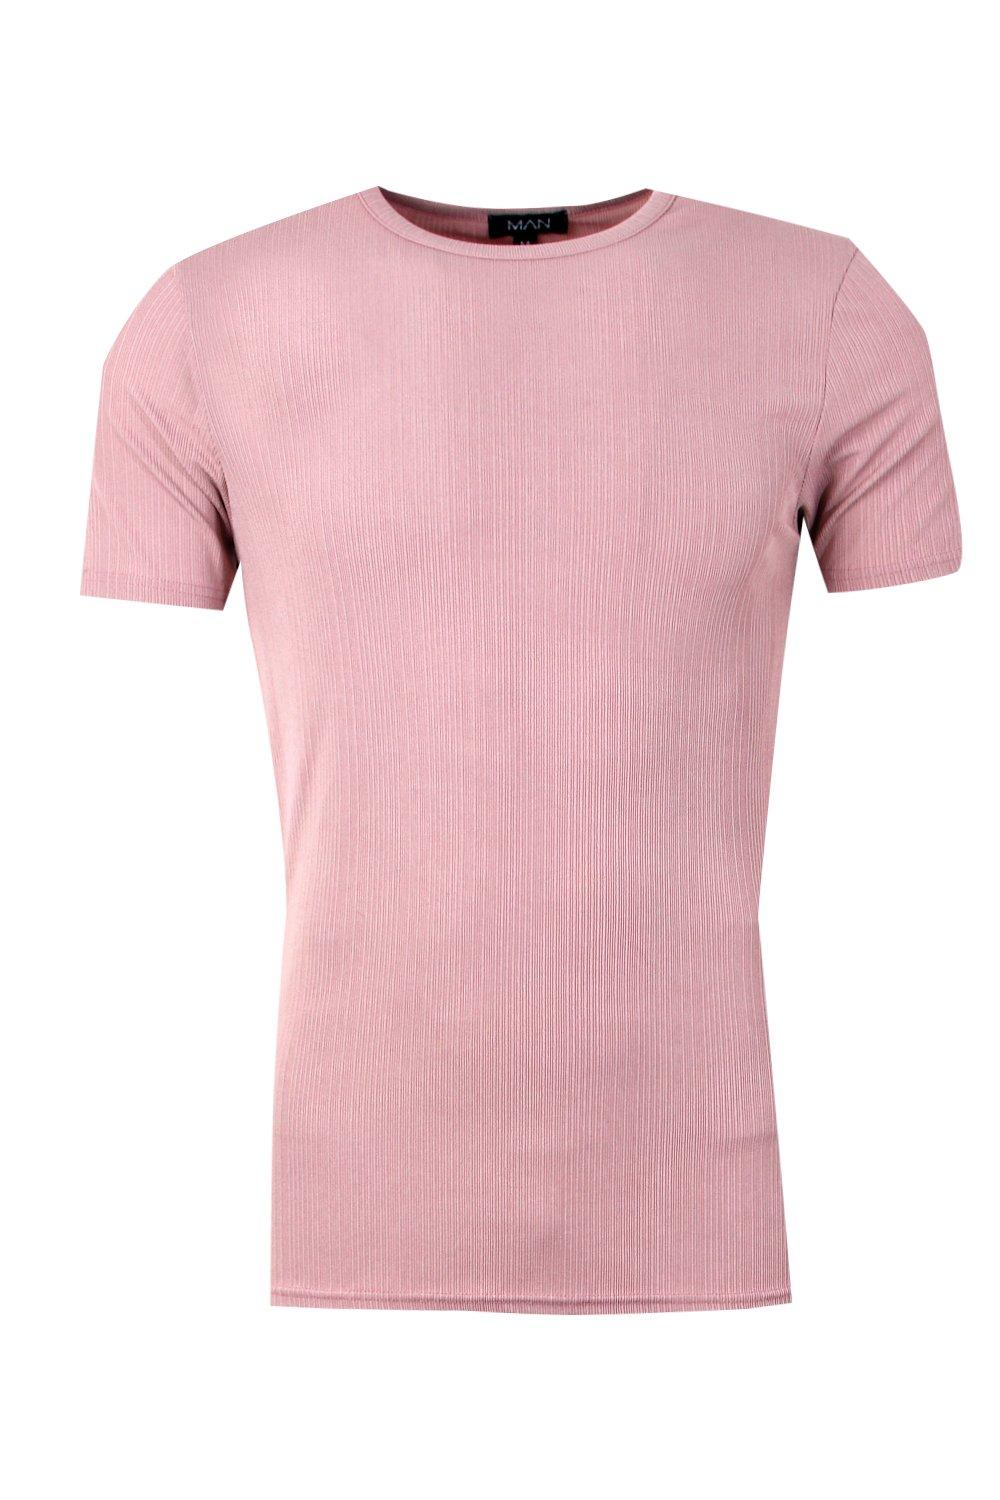 boohooMAN pink Muscle Fit Fine Ribbed T-Shirt